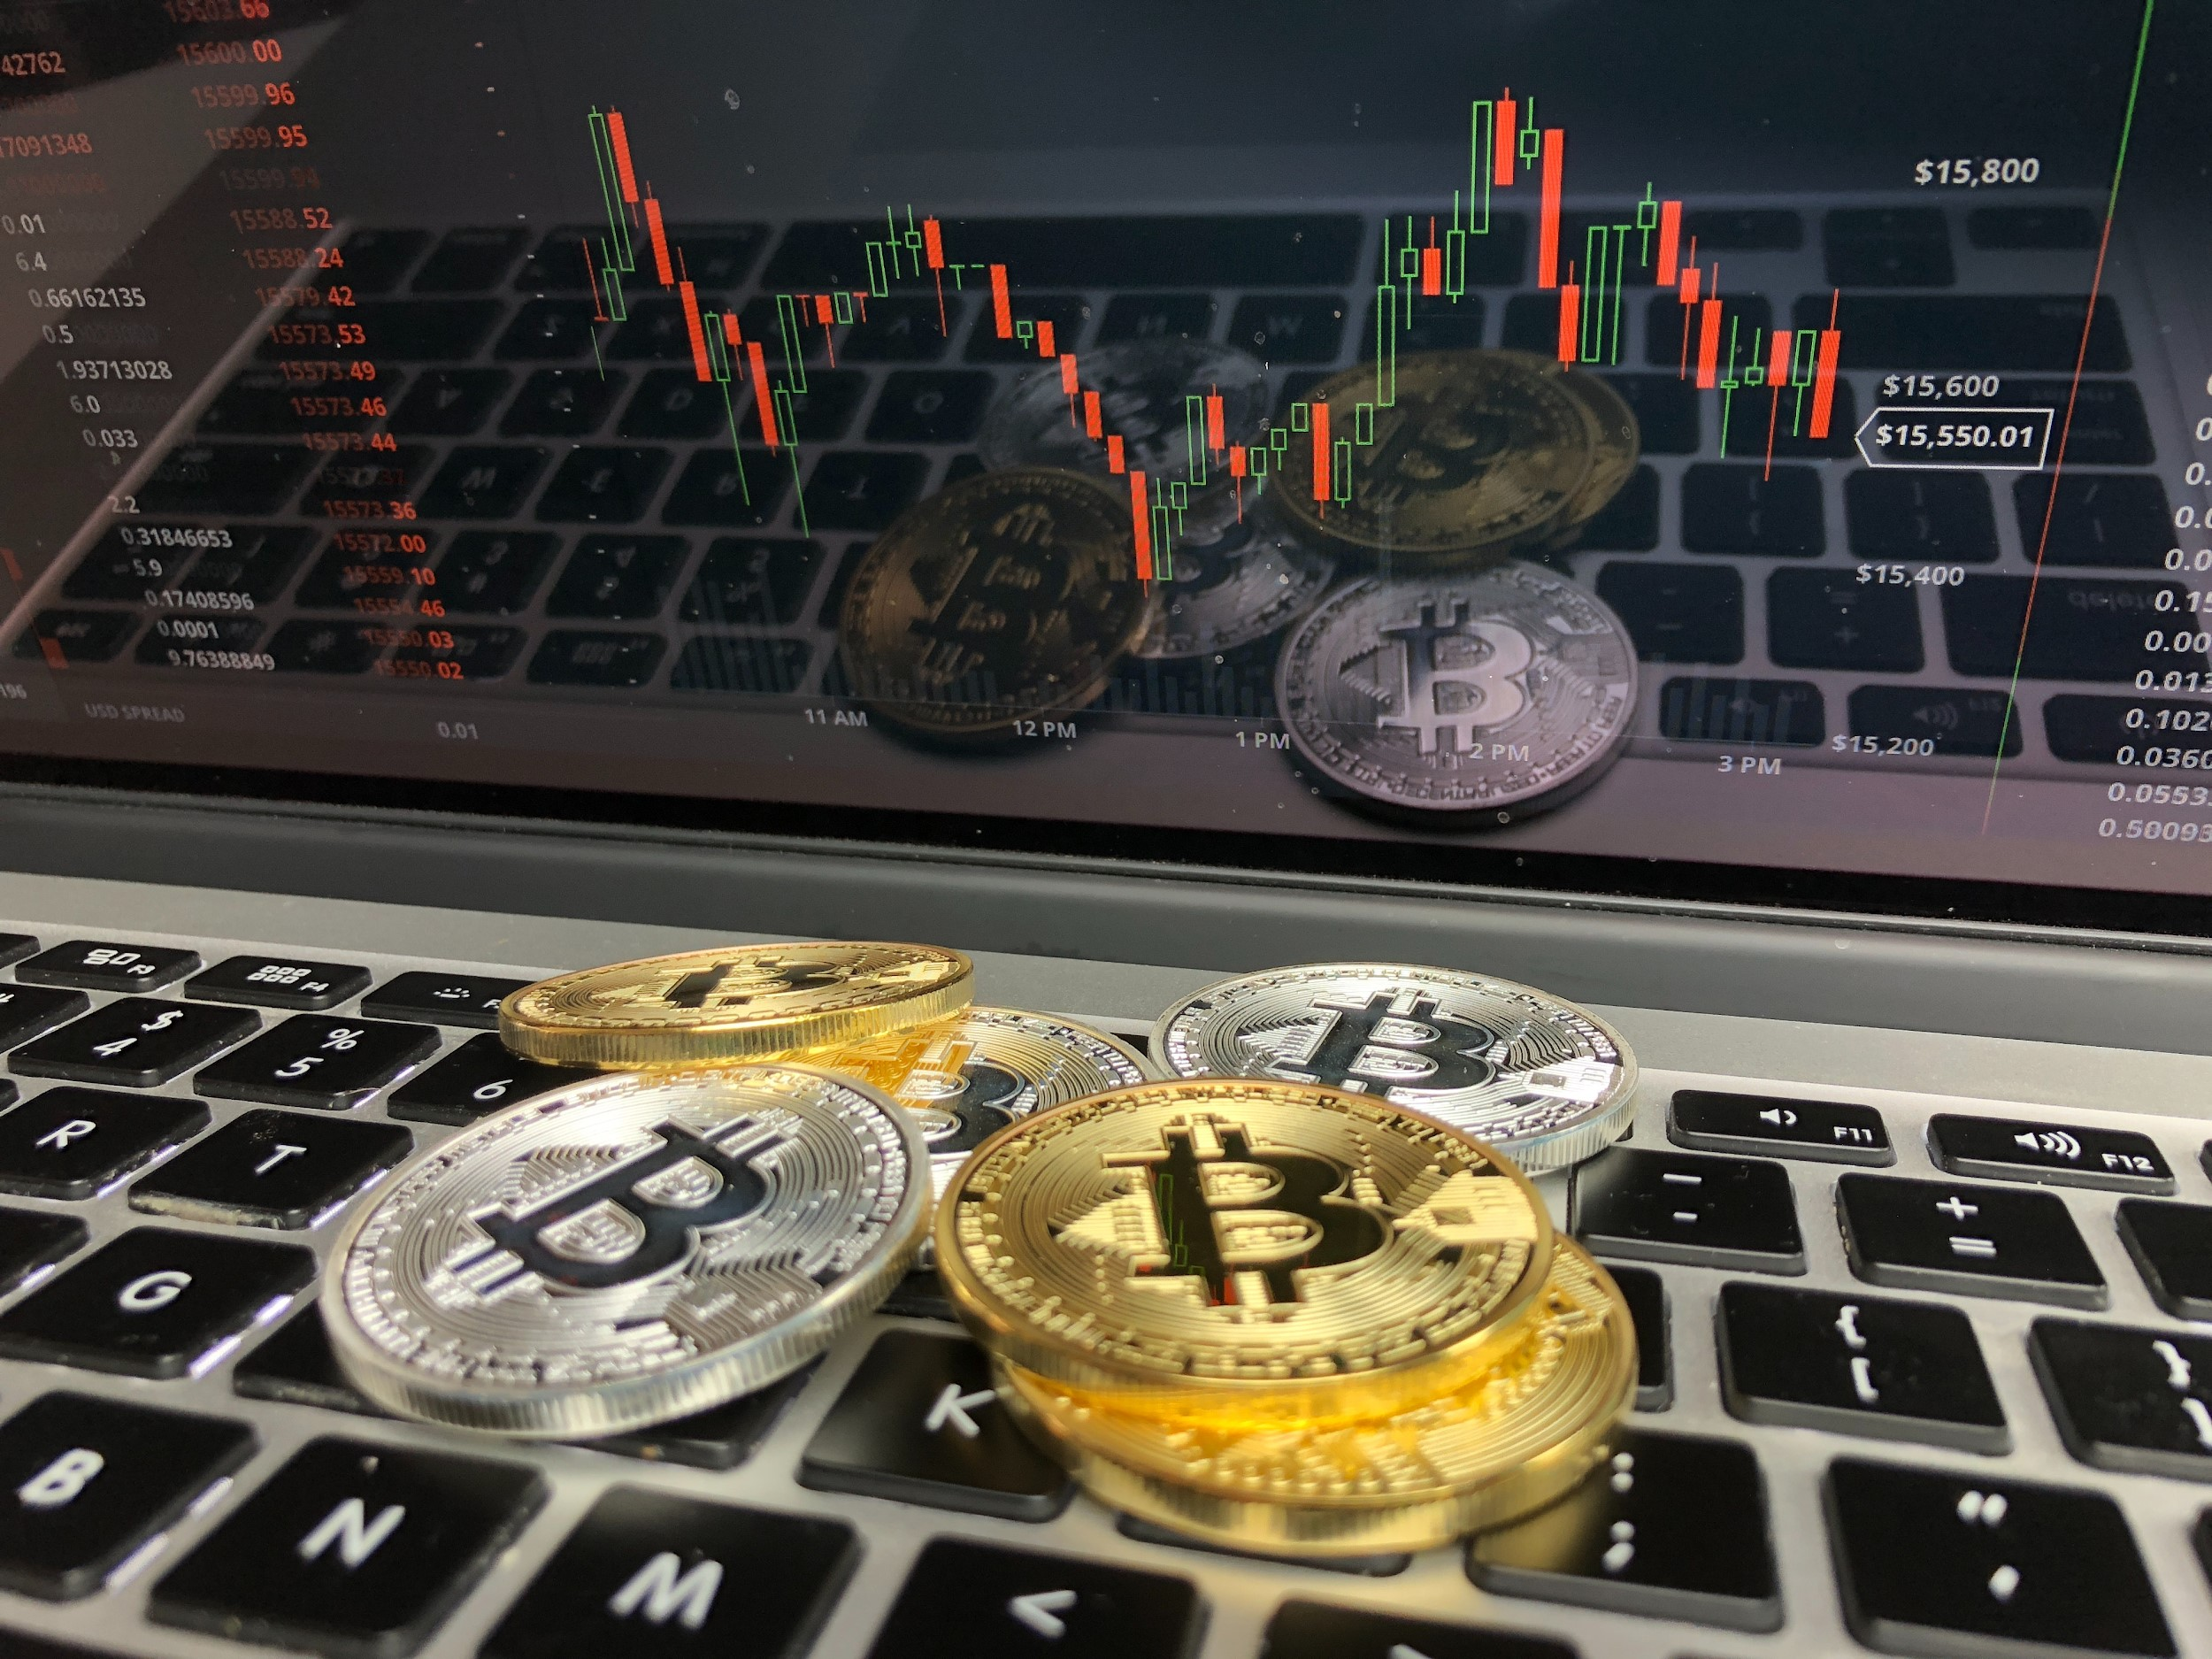 Third-party attack on cryptocurrency exchange